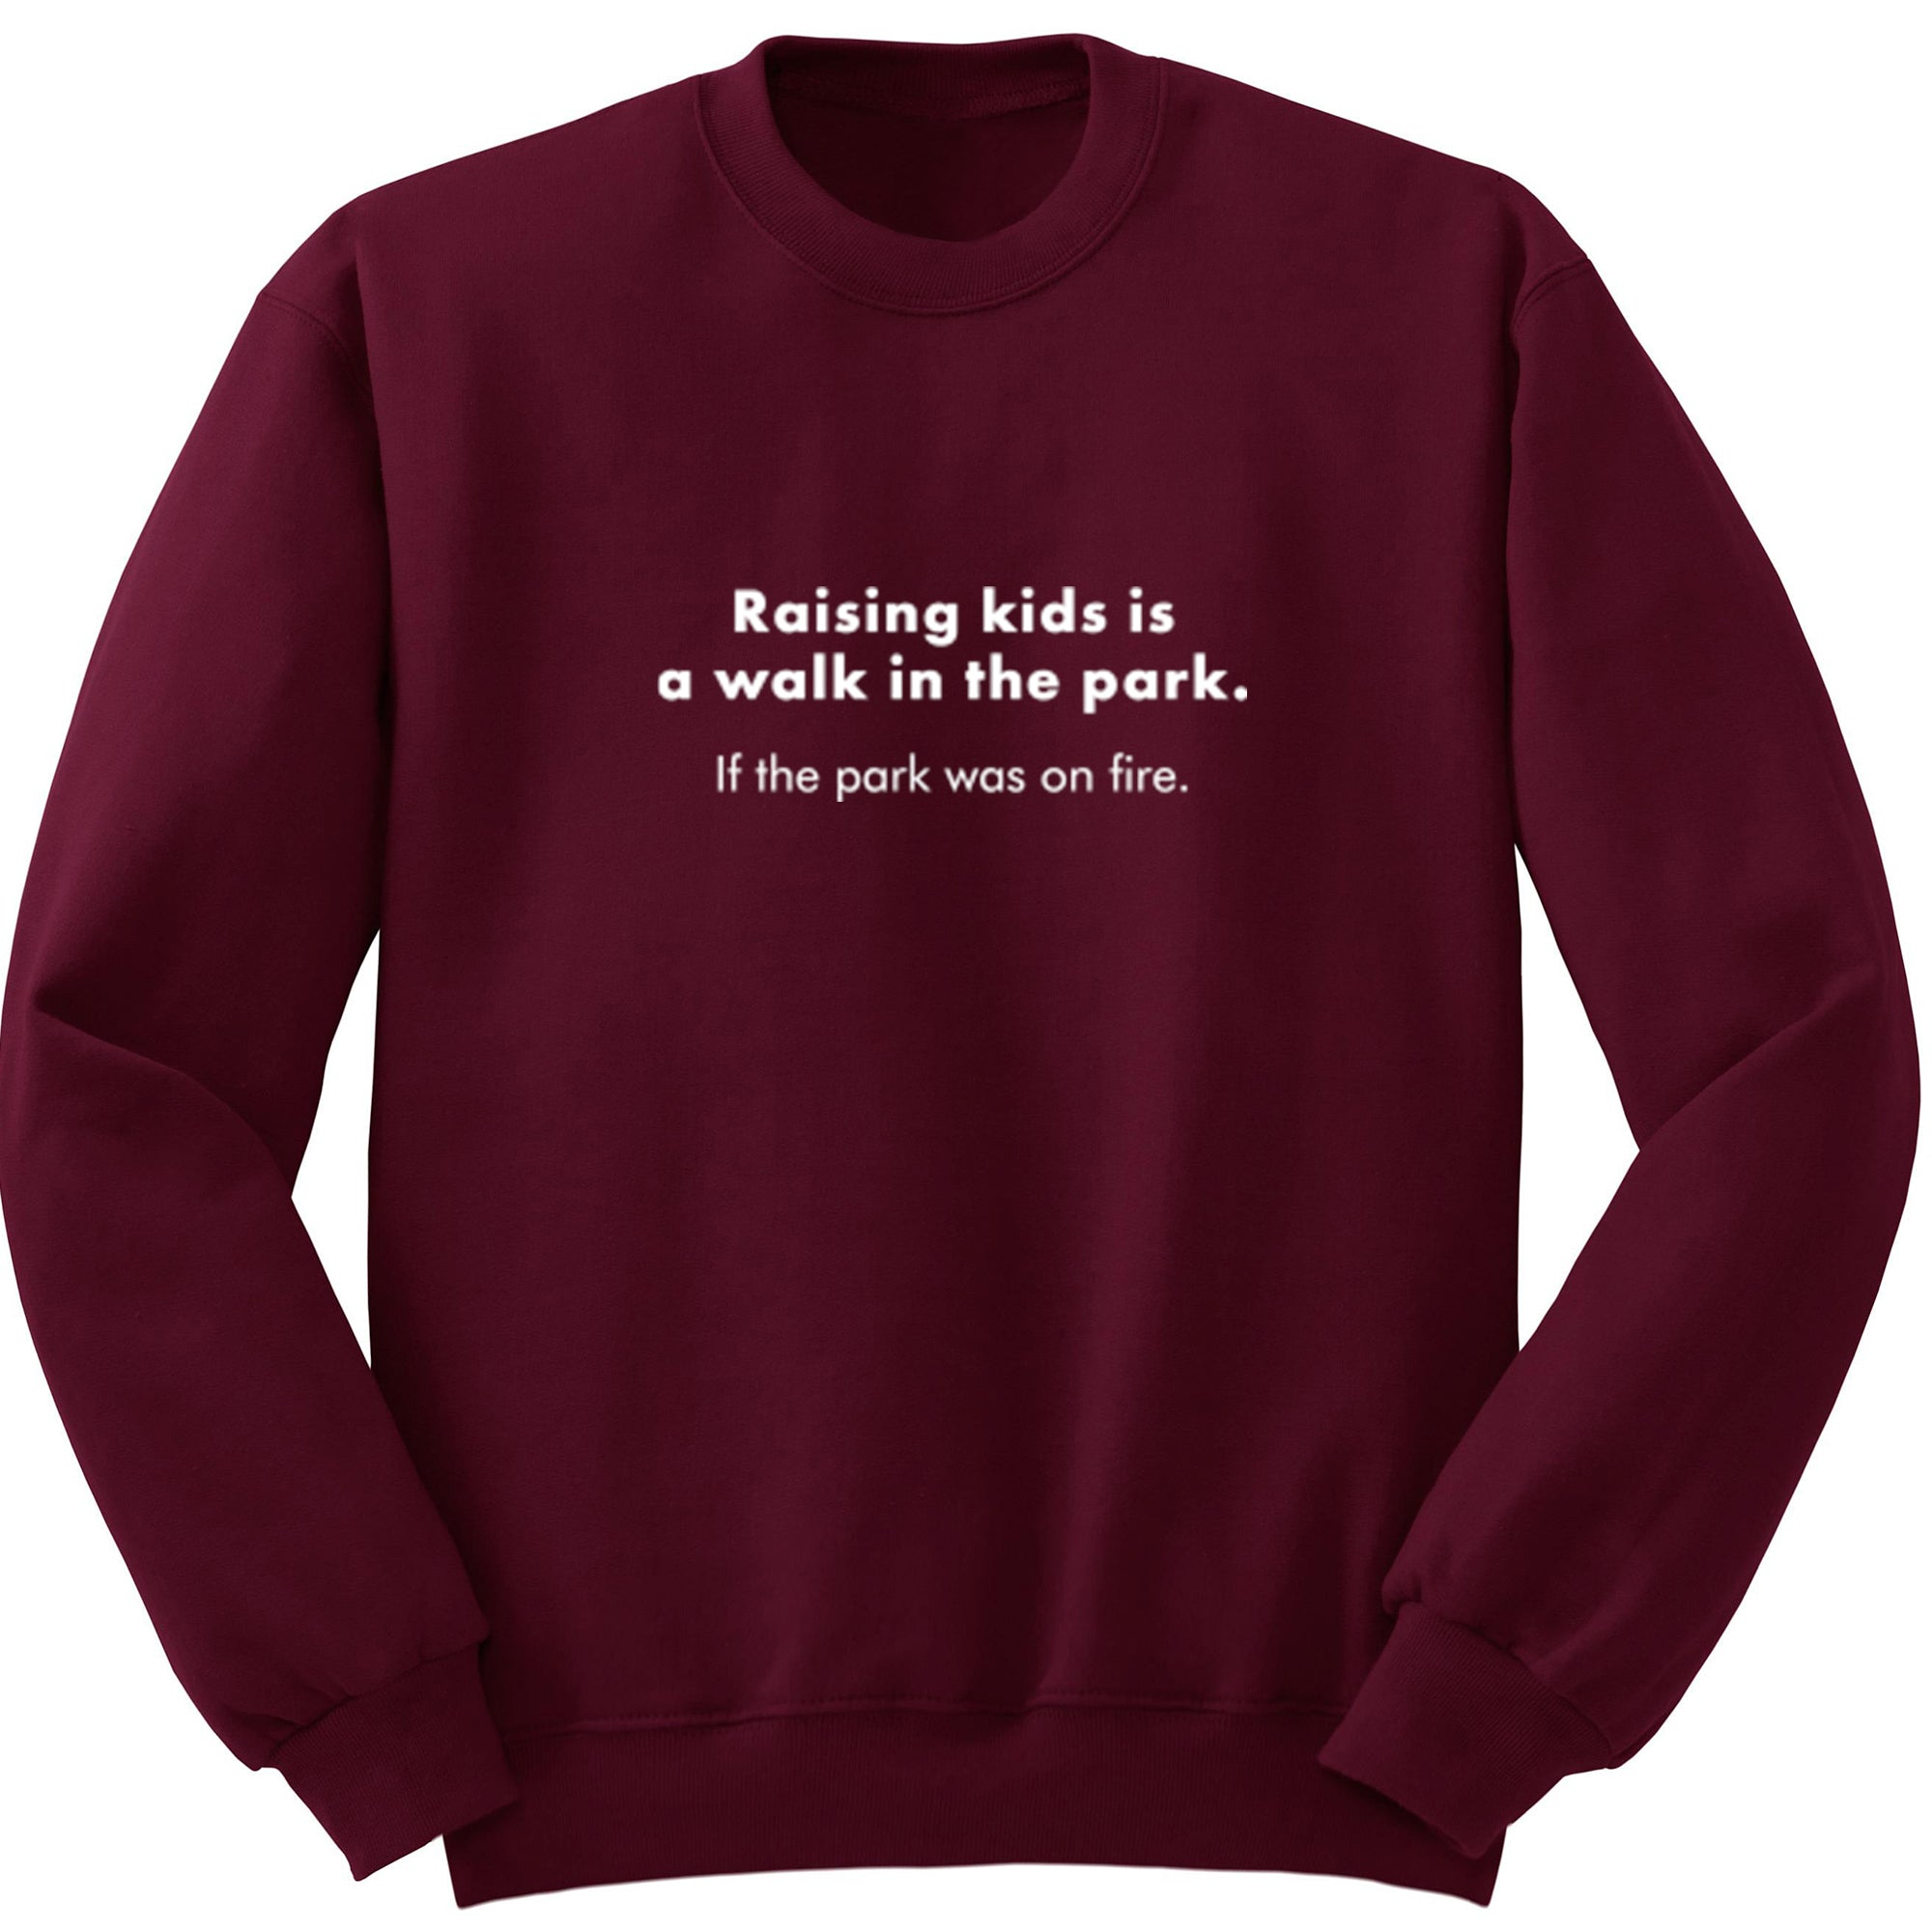 Raising Kids Is A Walk In The Park Unisex Jumper A0090 - Illustrated Identity Ltd.